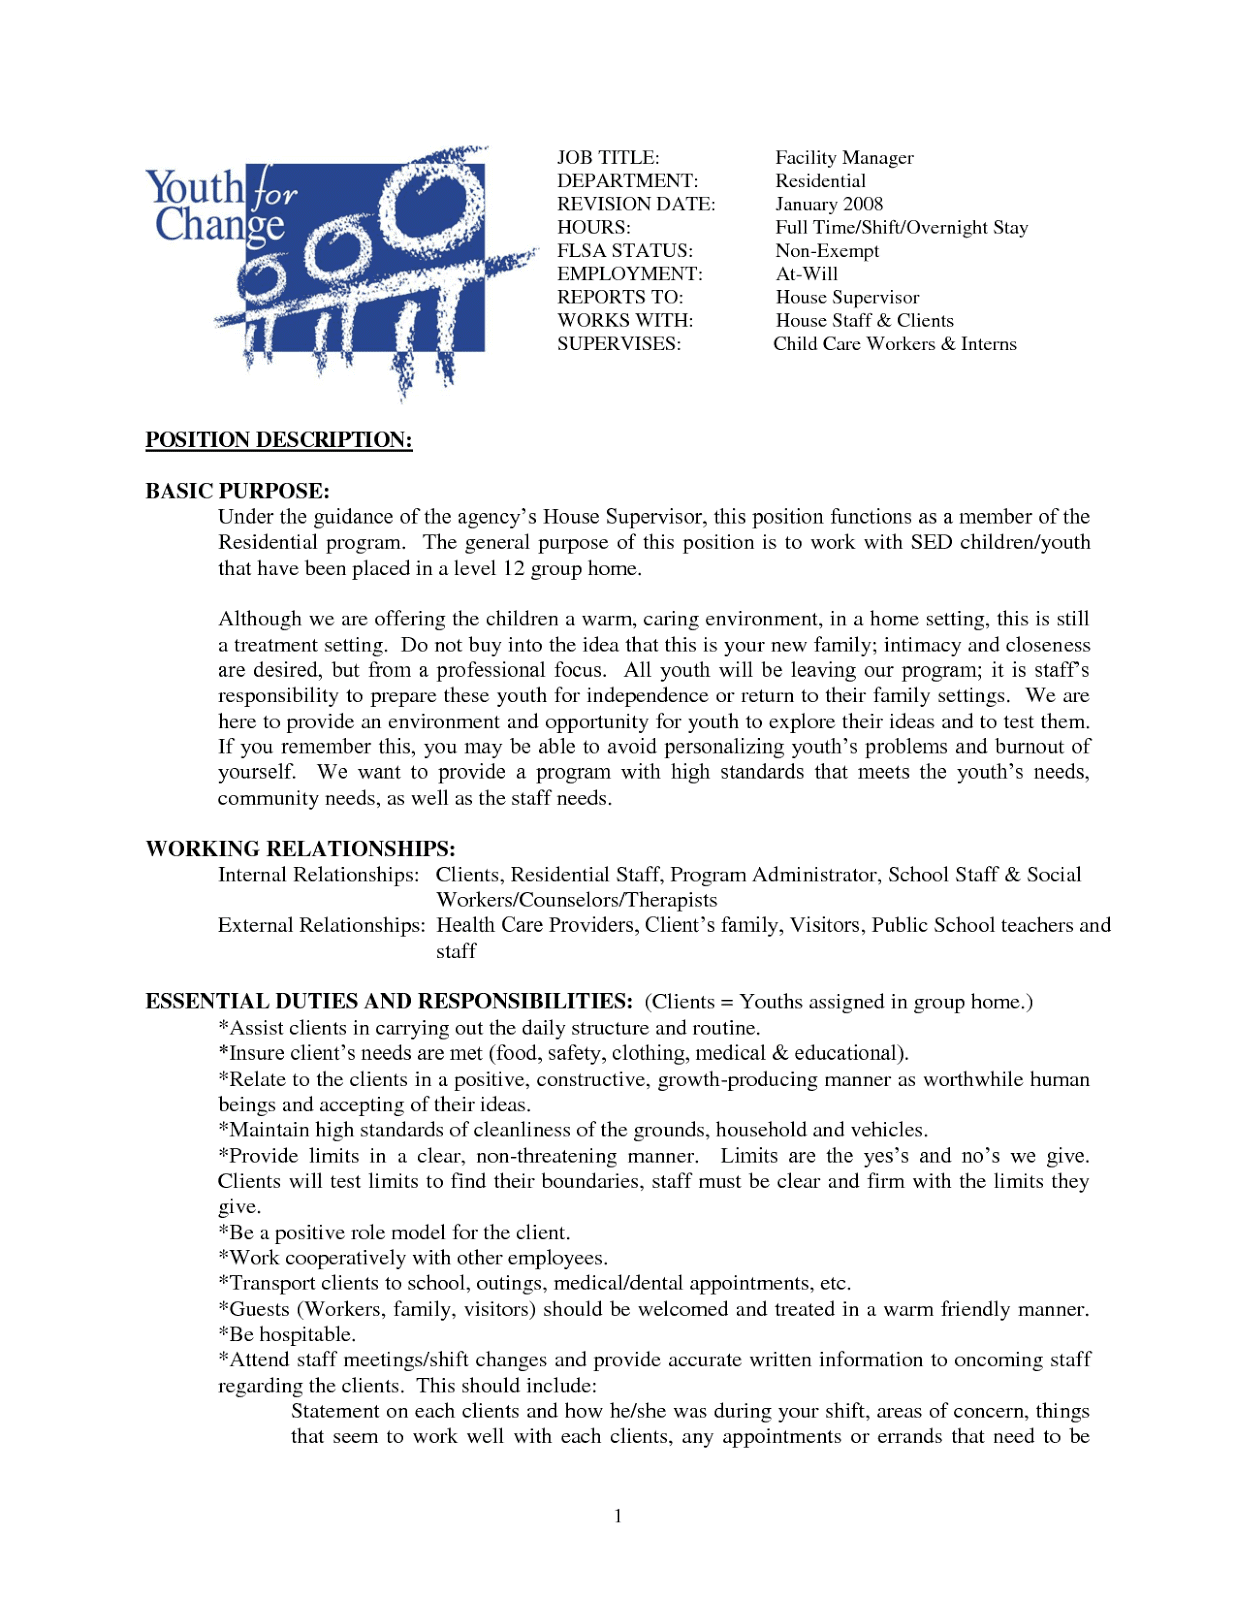 House Cleaning Resume Sample Resumes